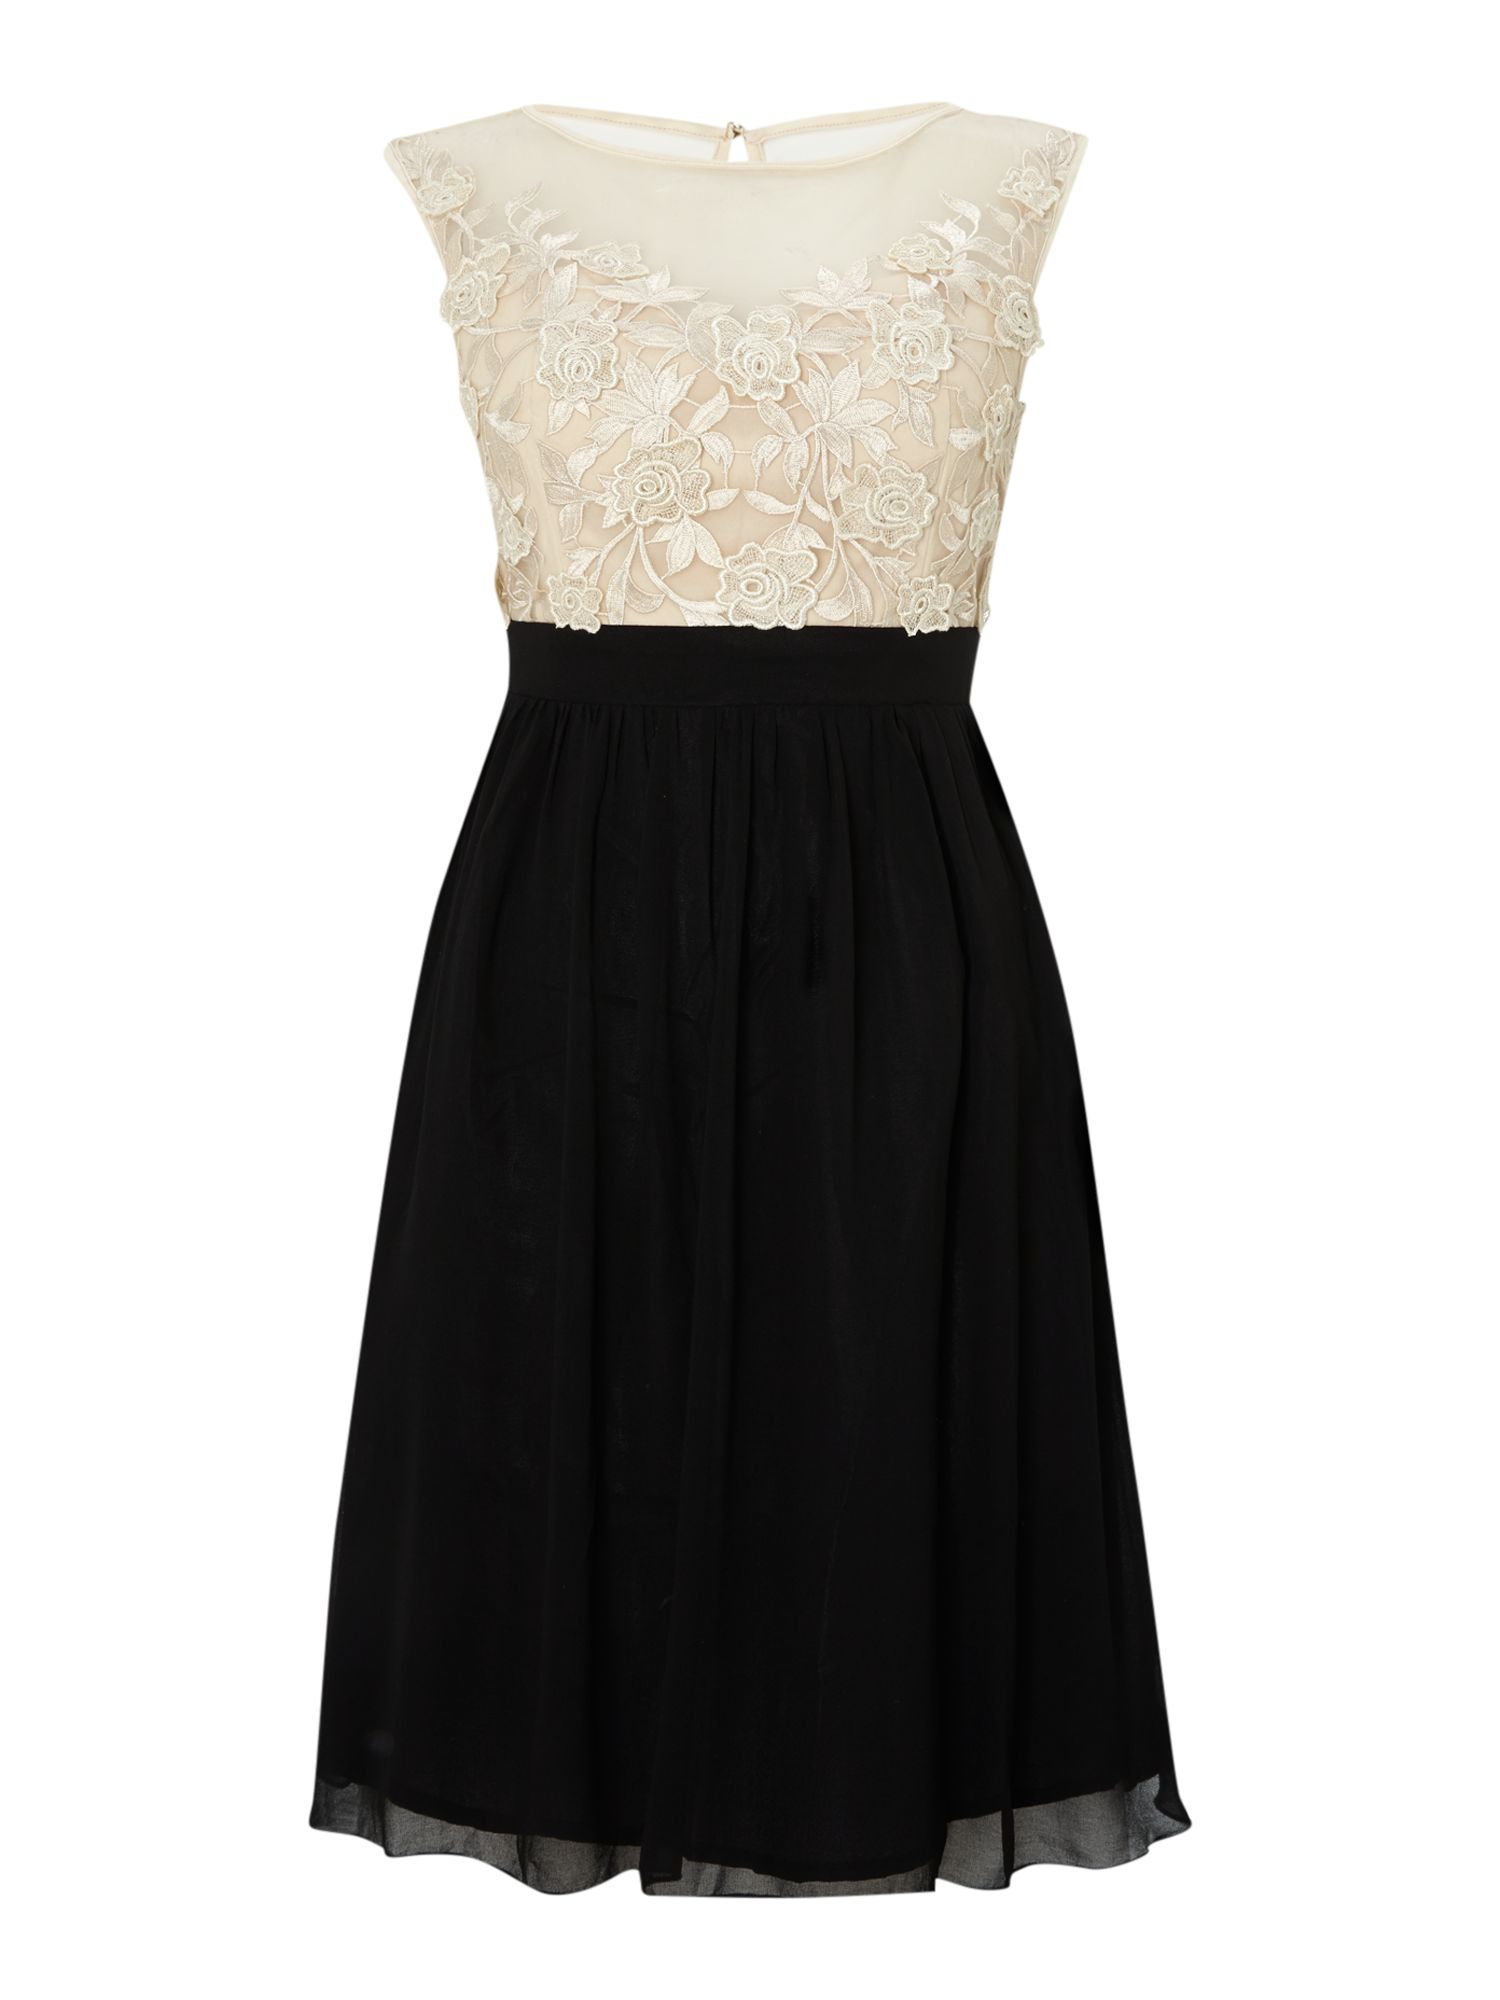 SL Sheer Lace Top Fit and Flare Dress